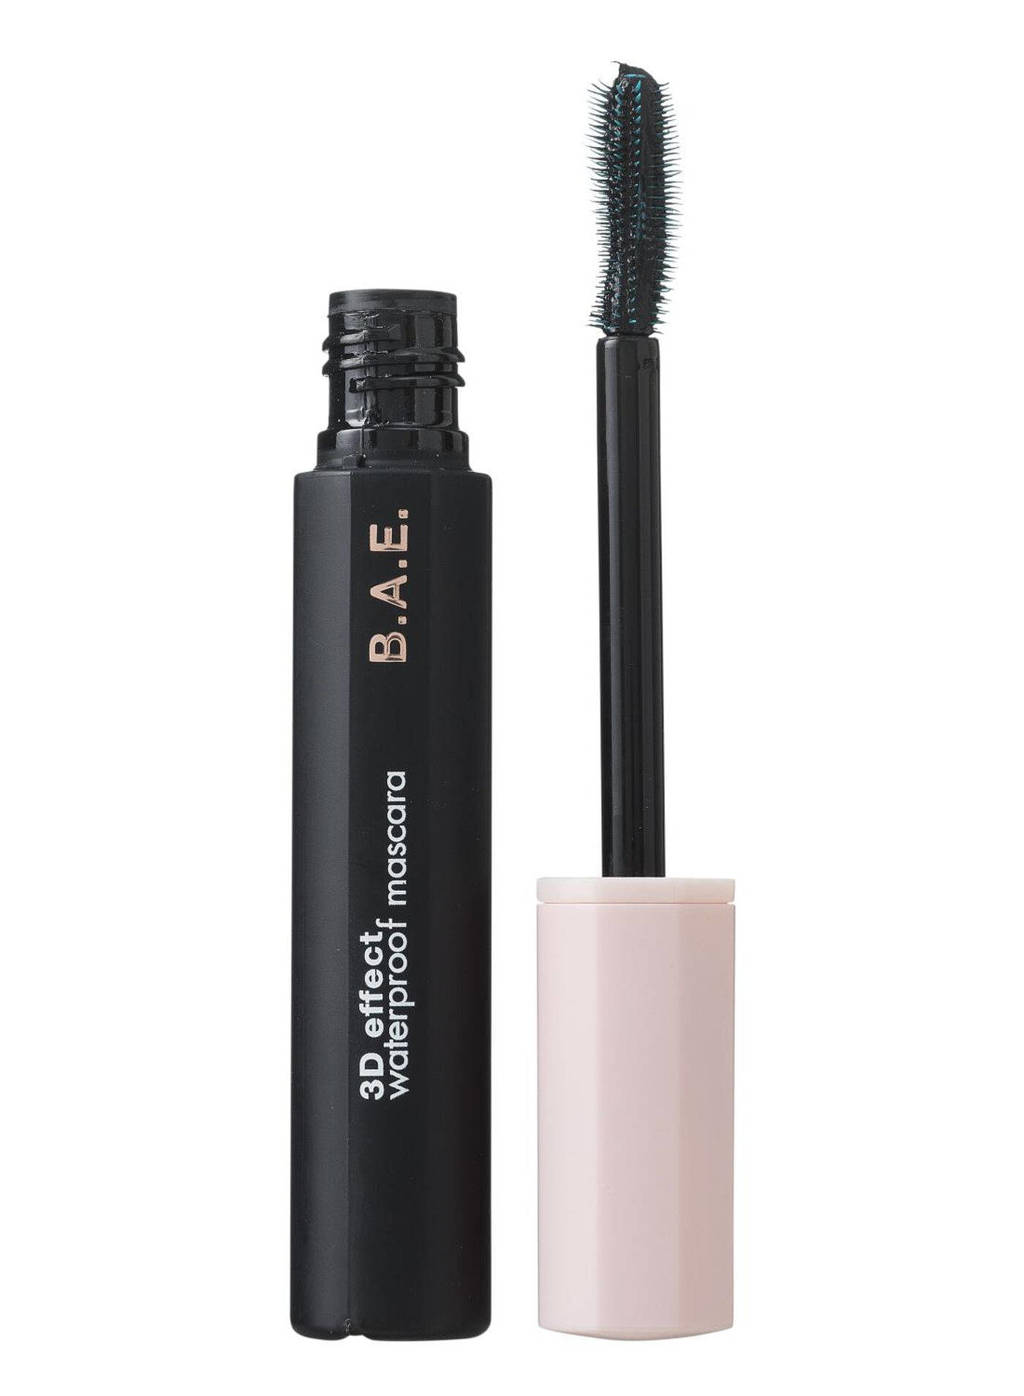 B.A.E. 3D effect waterproof mascara - Zwart